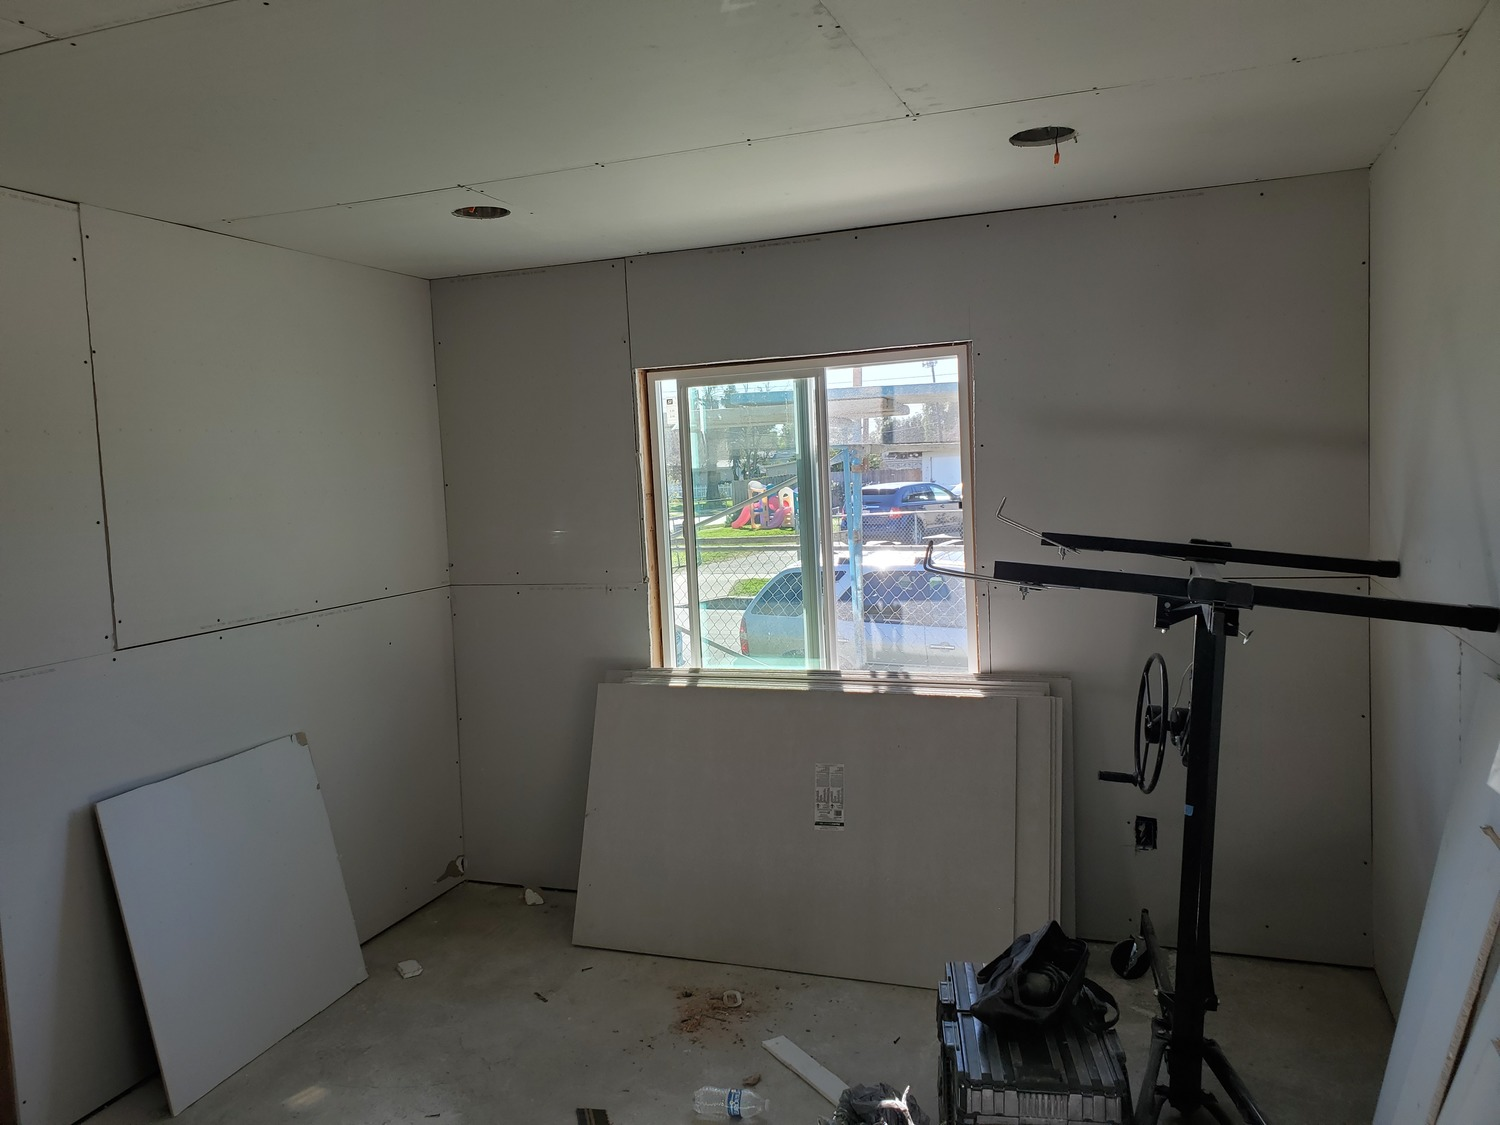 Drywall & electric